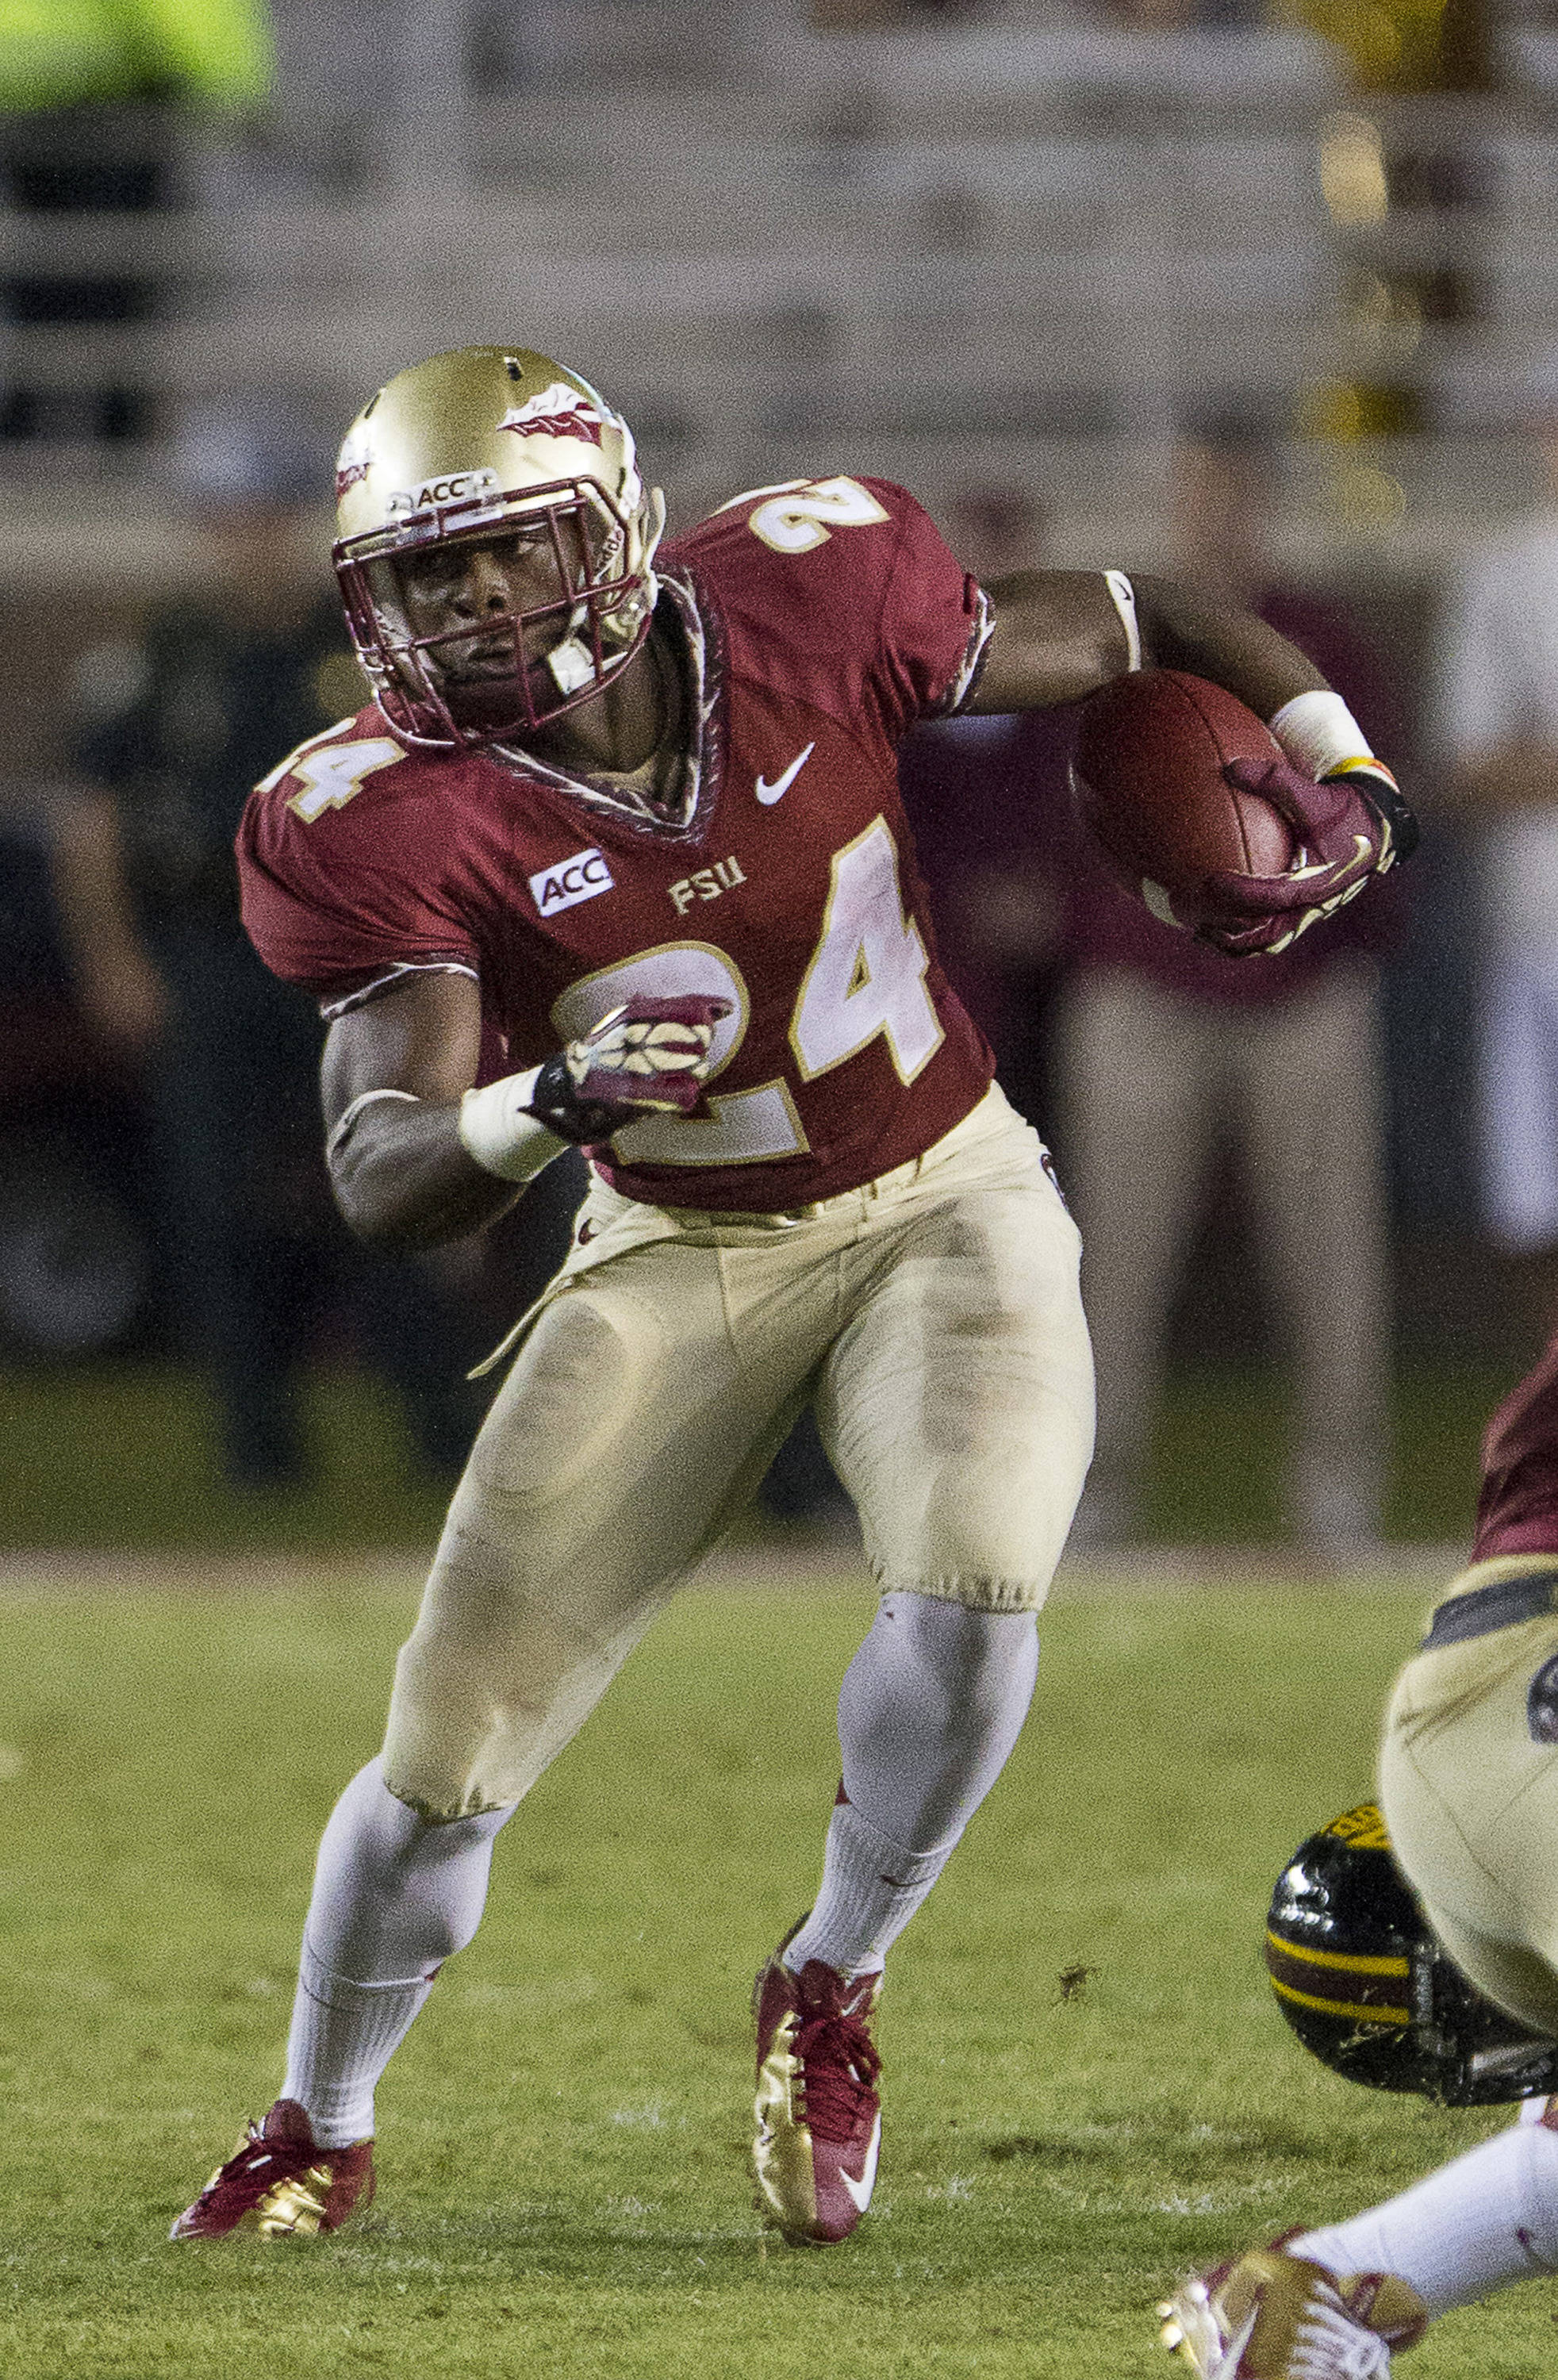 Ryan Green (24) carries the ball during FSU Football's 54-6 win over Bethune-Cookman on September 21, 2013 in Tallahassee, Fla